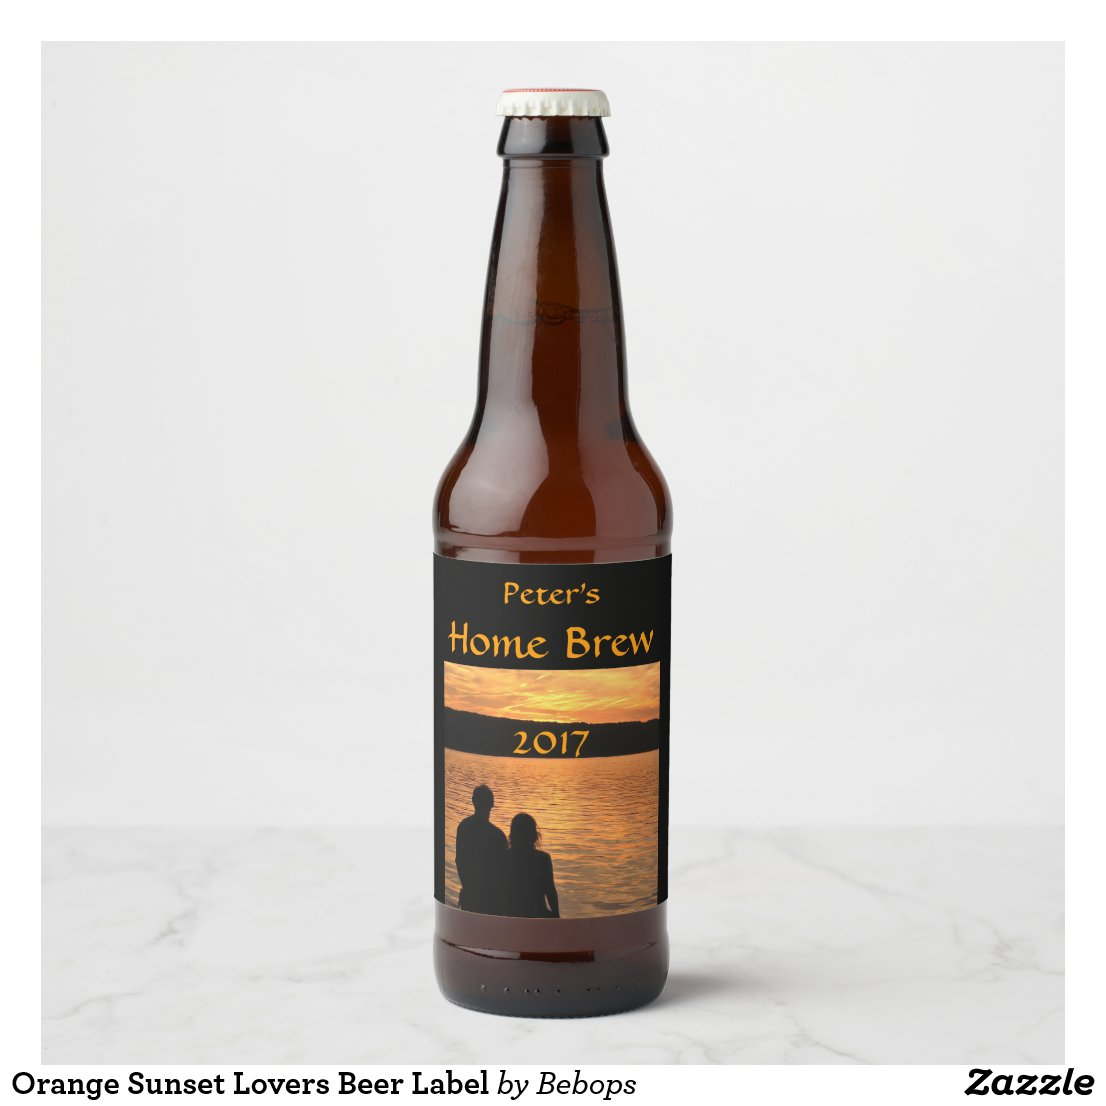 Orange Sunset Lovers Beer Label